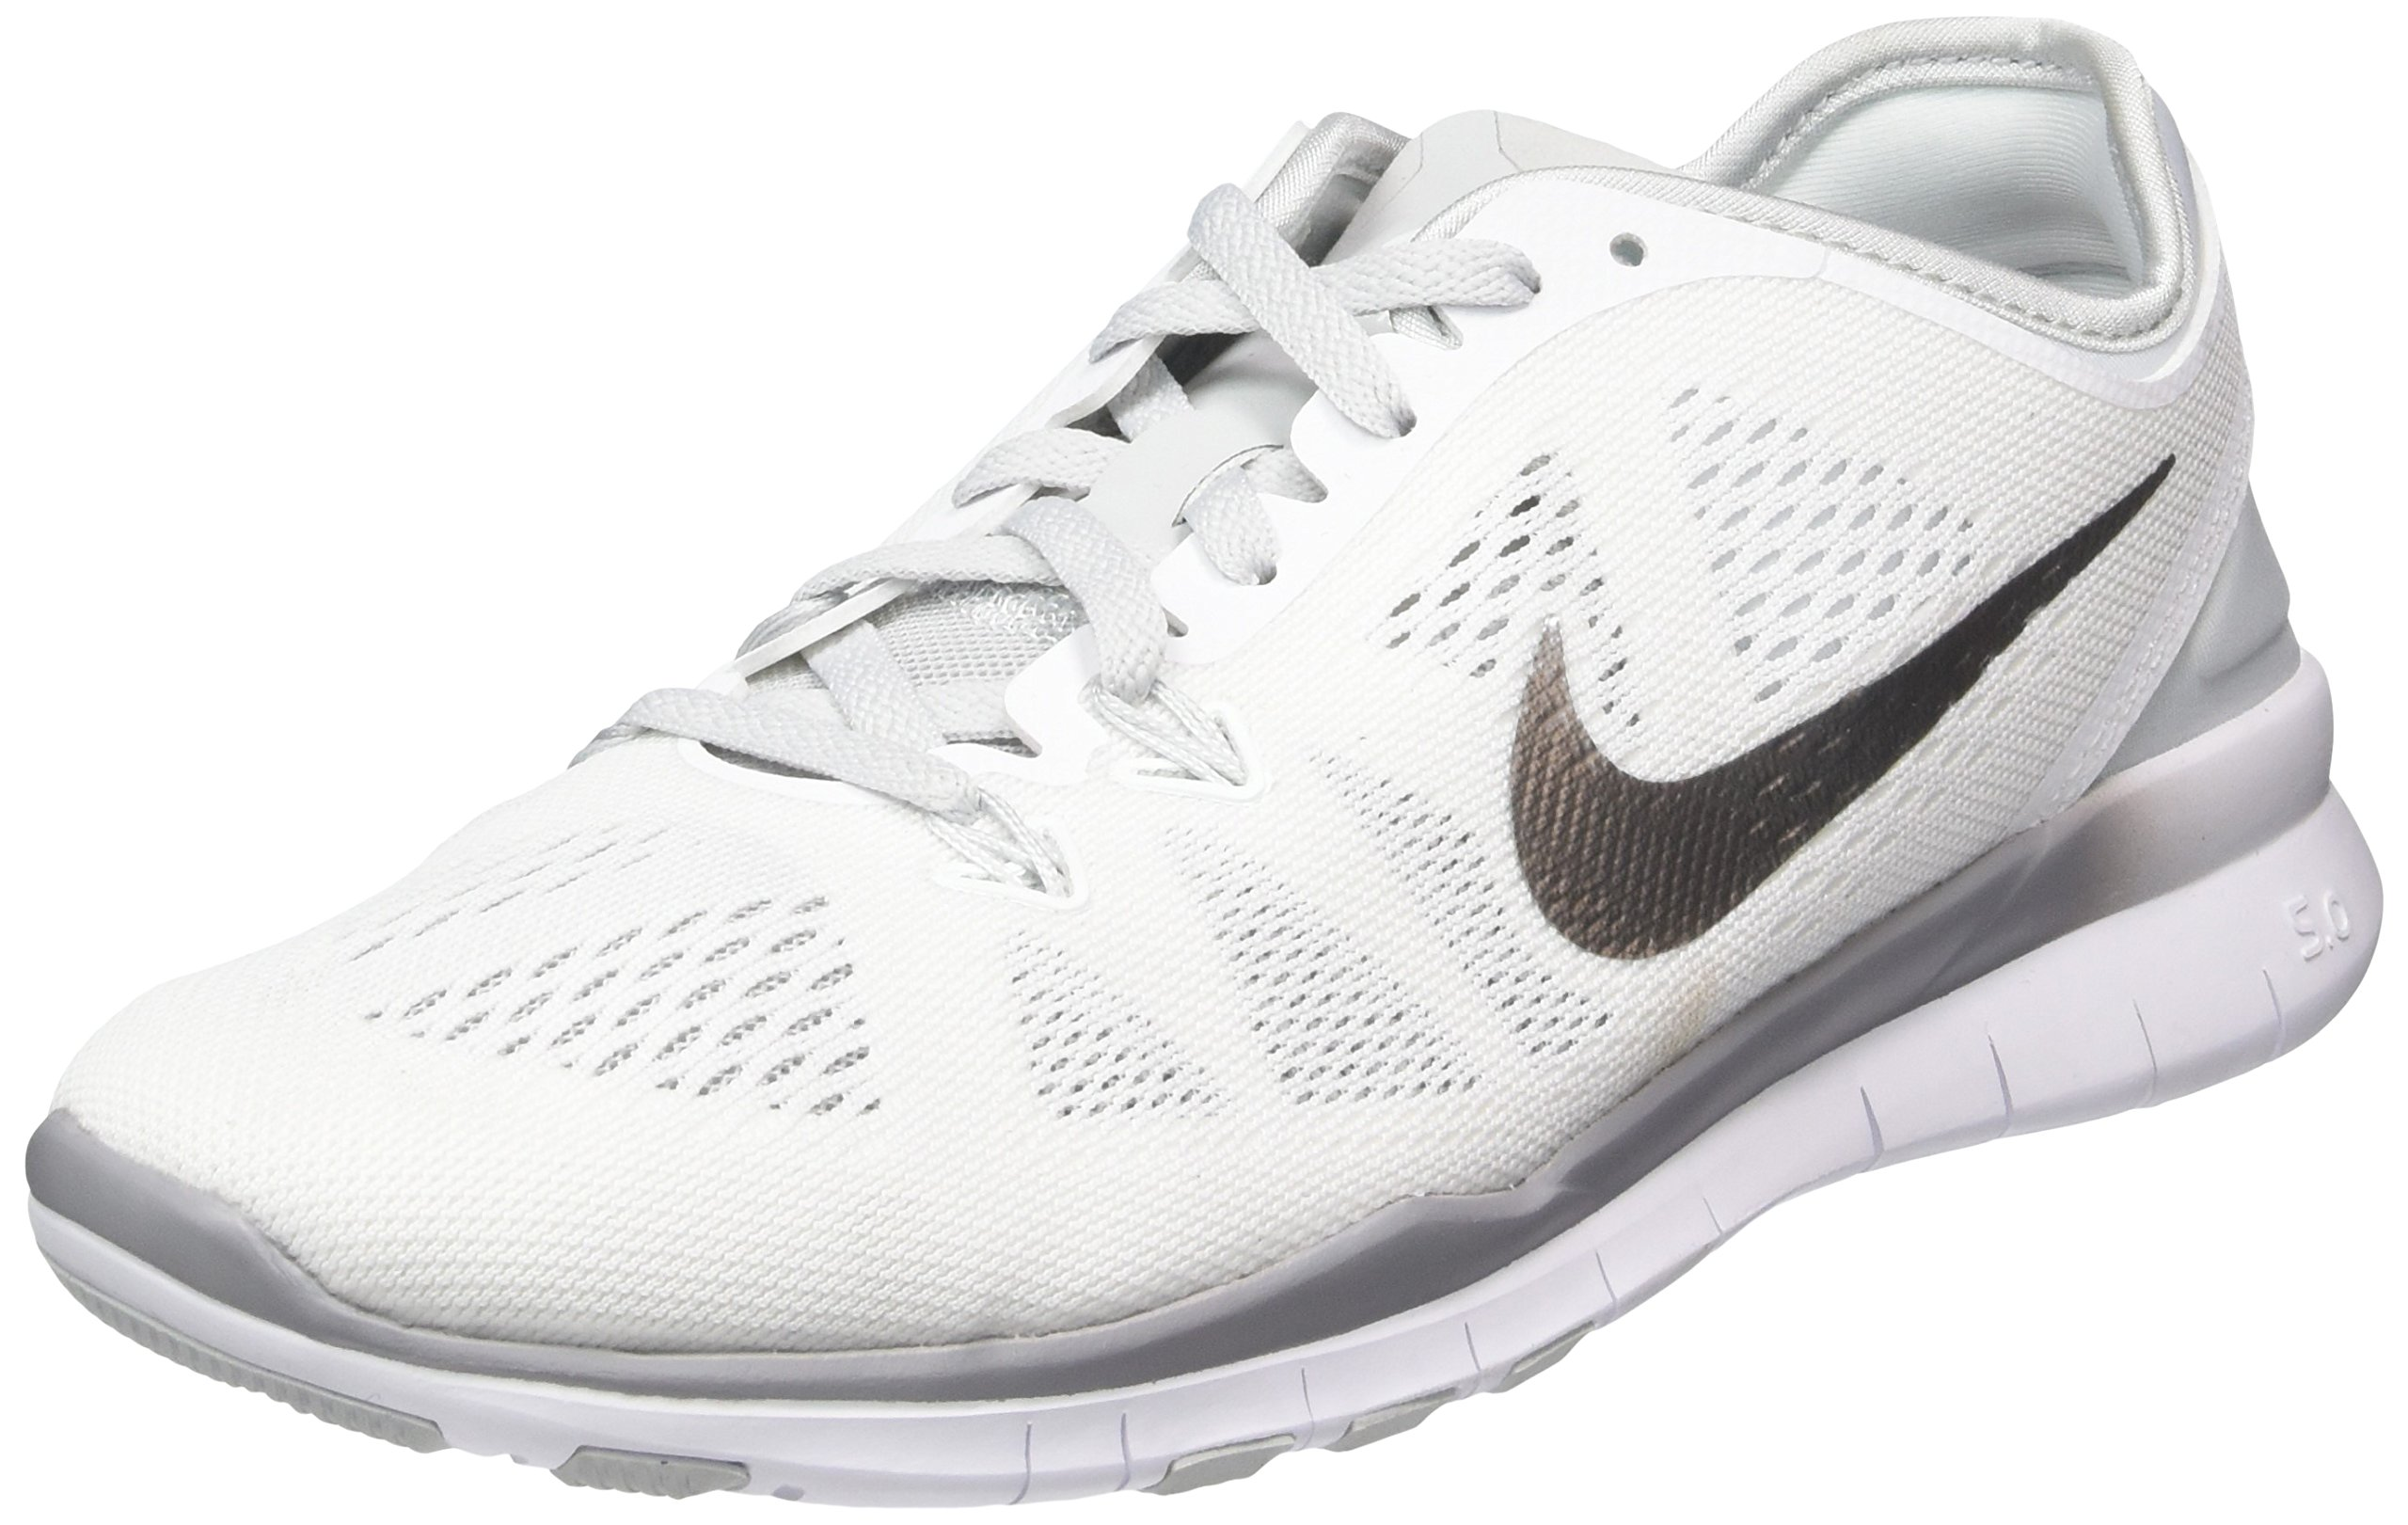 check out 15326 80972 Galleon - Nike Free 5.0 TR Fit 5 Womens Cross Training Shoes (10.5, WHITE PURE  PLATINUM  METALLIC SILVER)